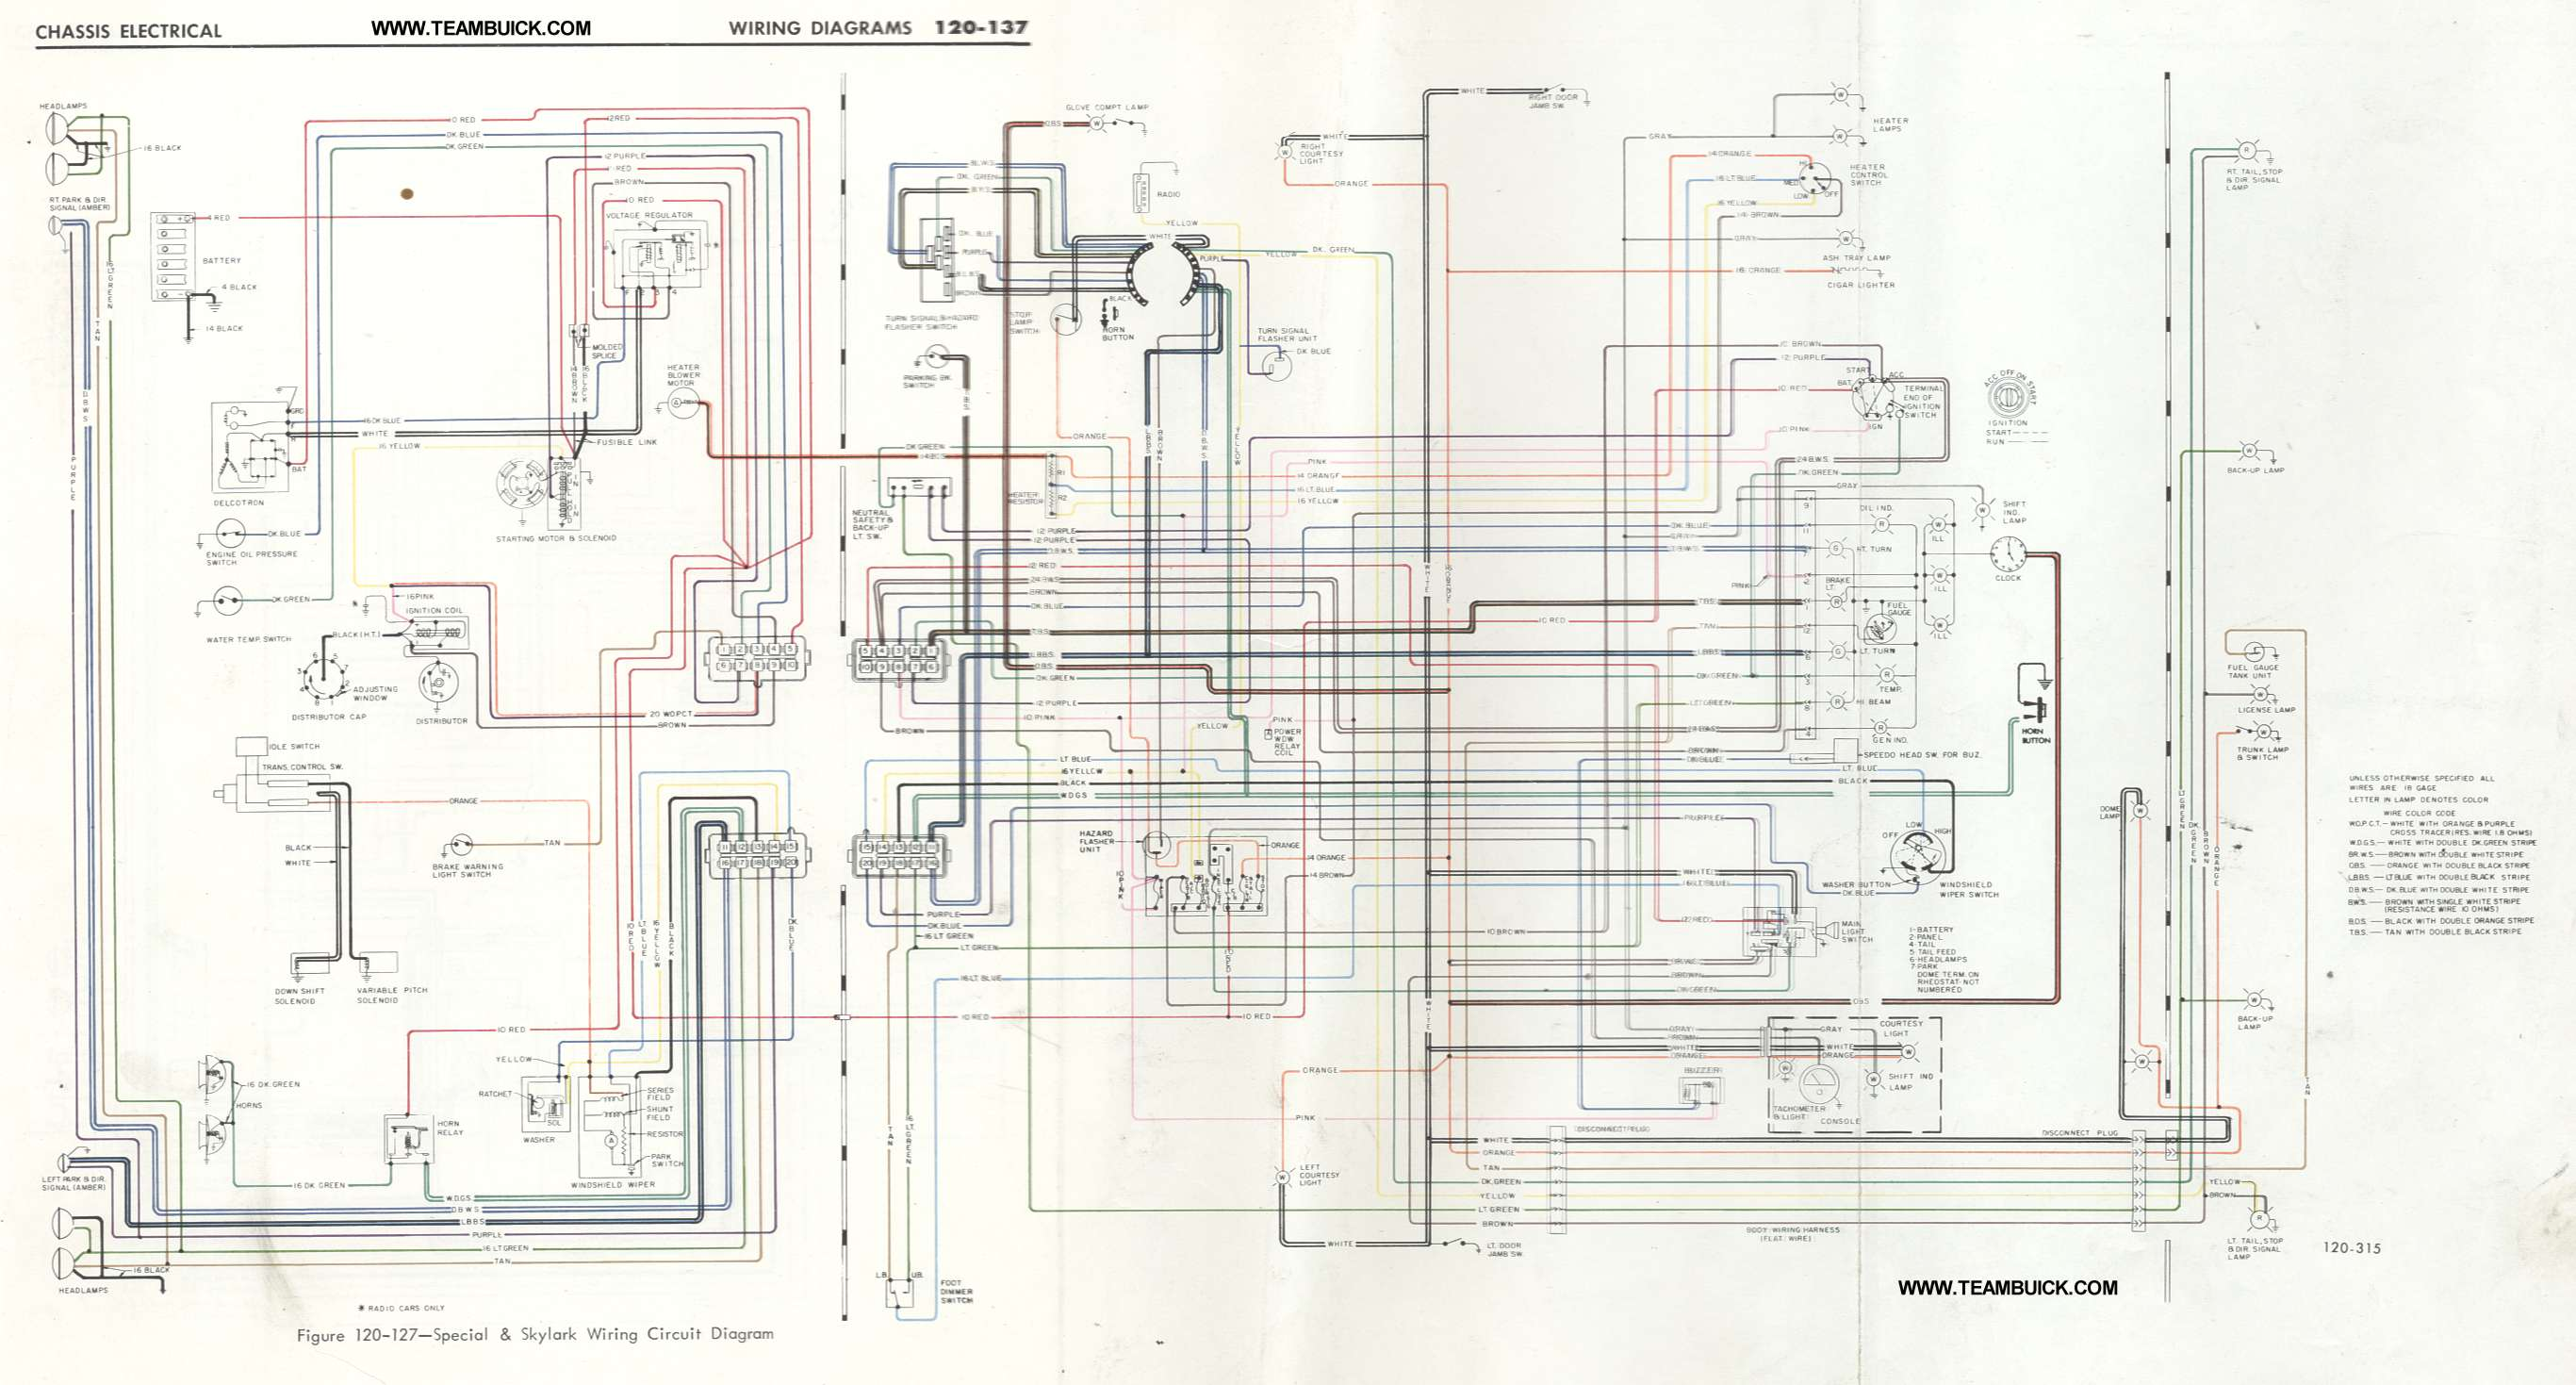 wiring diagrams buick gs400 detailed schematics diagram rh keyplusrubber  com 2000 buick century headlight wiring diagram 2006 buick lacrosse  headlight ...